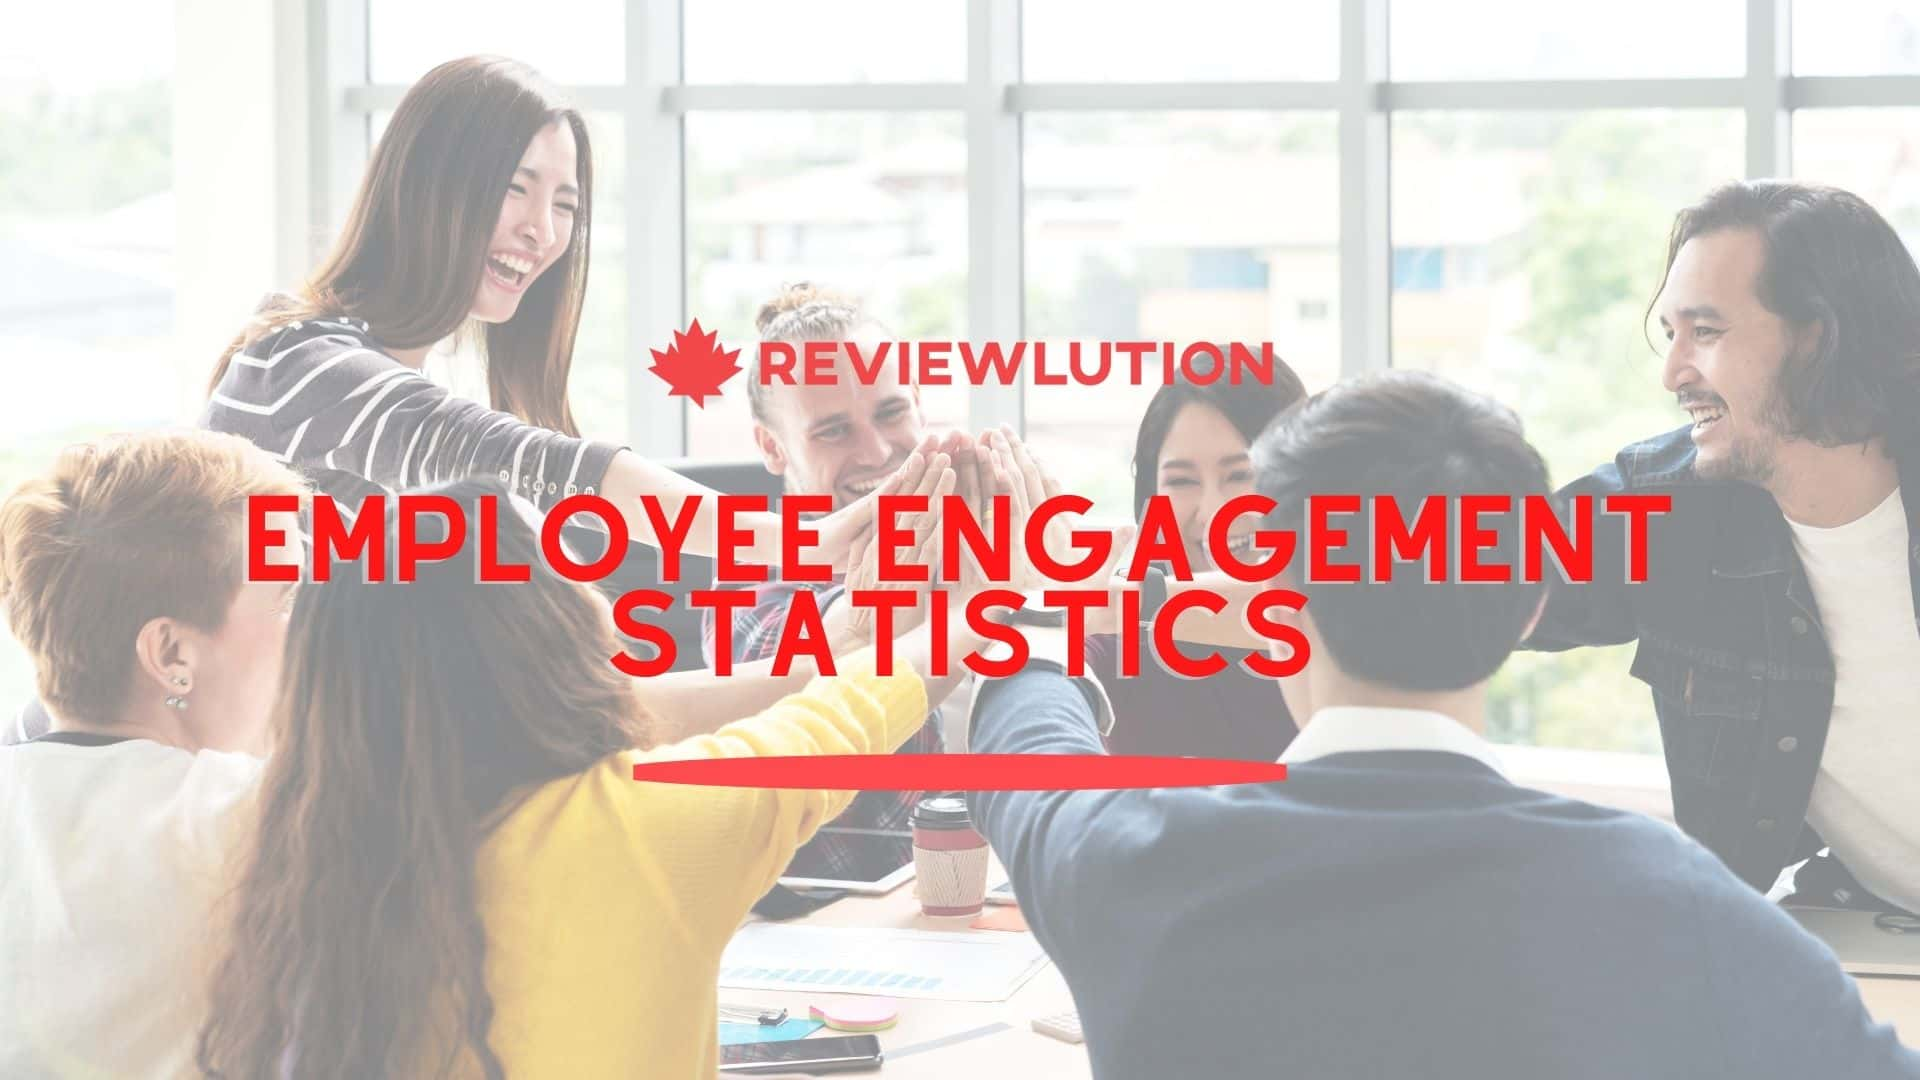 11 Essential Employee Engagement Statistics for 2021